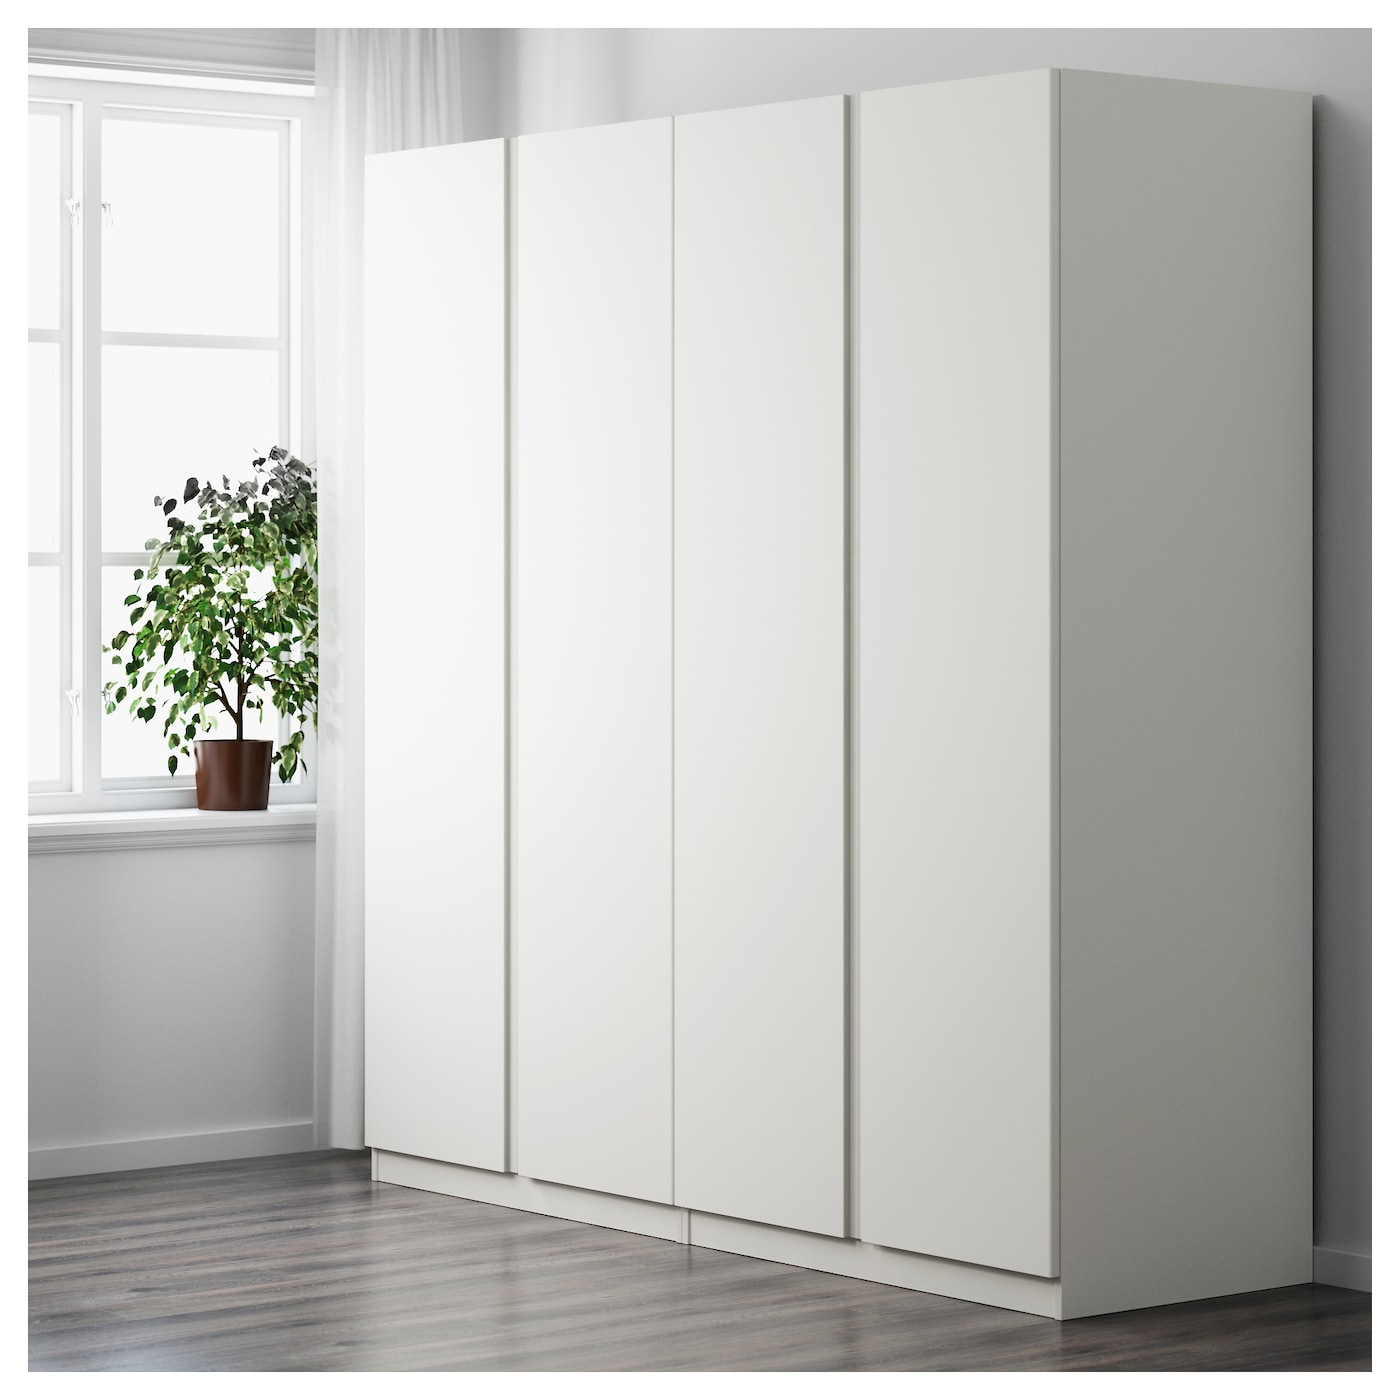 pax wardrobe white vikanes white 200x60x201 cm ikea. Black Bedroom Furniture Sets. Home Design Ideas